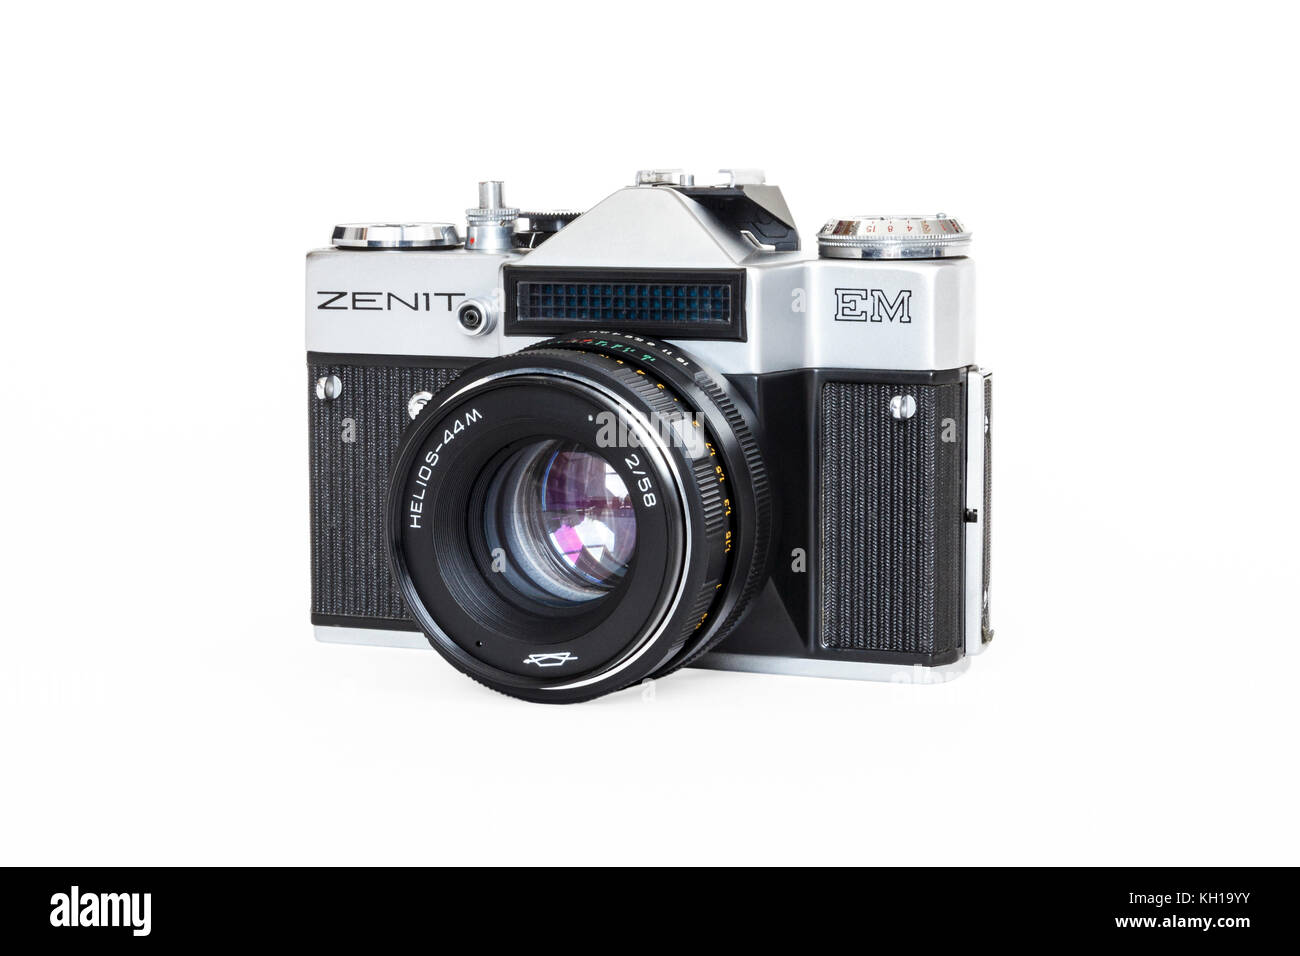 Zenit EM 35mm SLR 35mm roll film camera with 50mm lens, 1980s, made in USSR, isolated against a white background - Stock Image